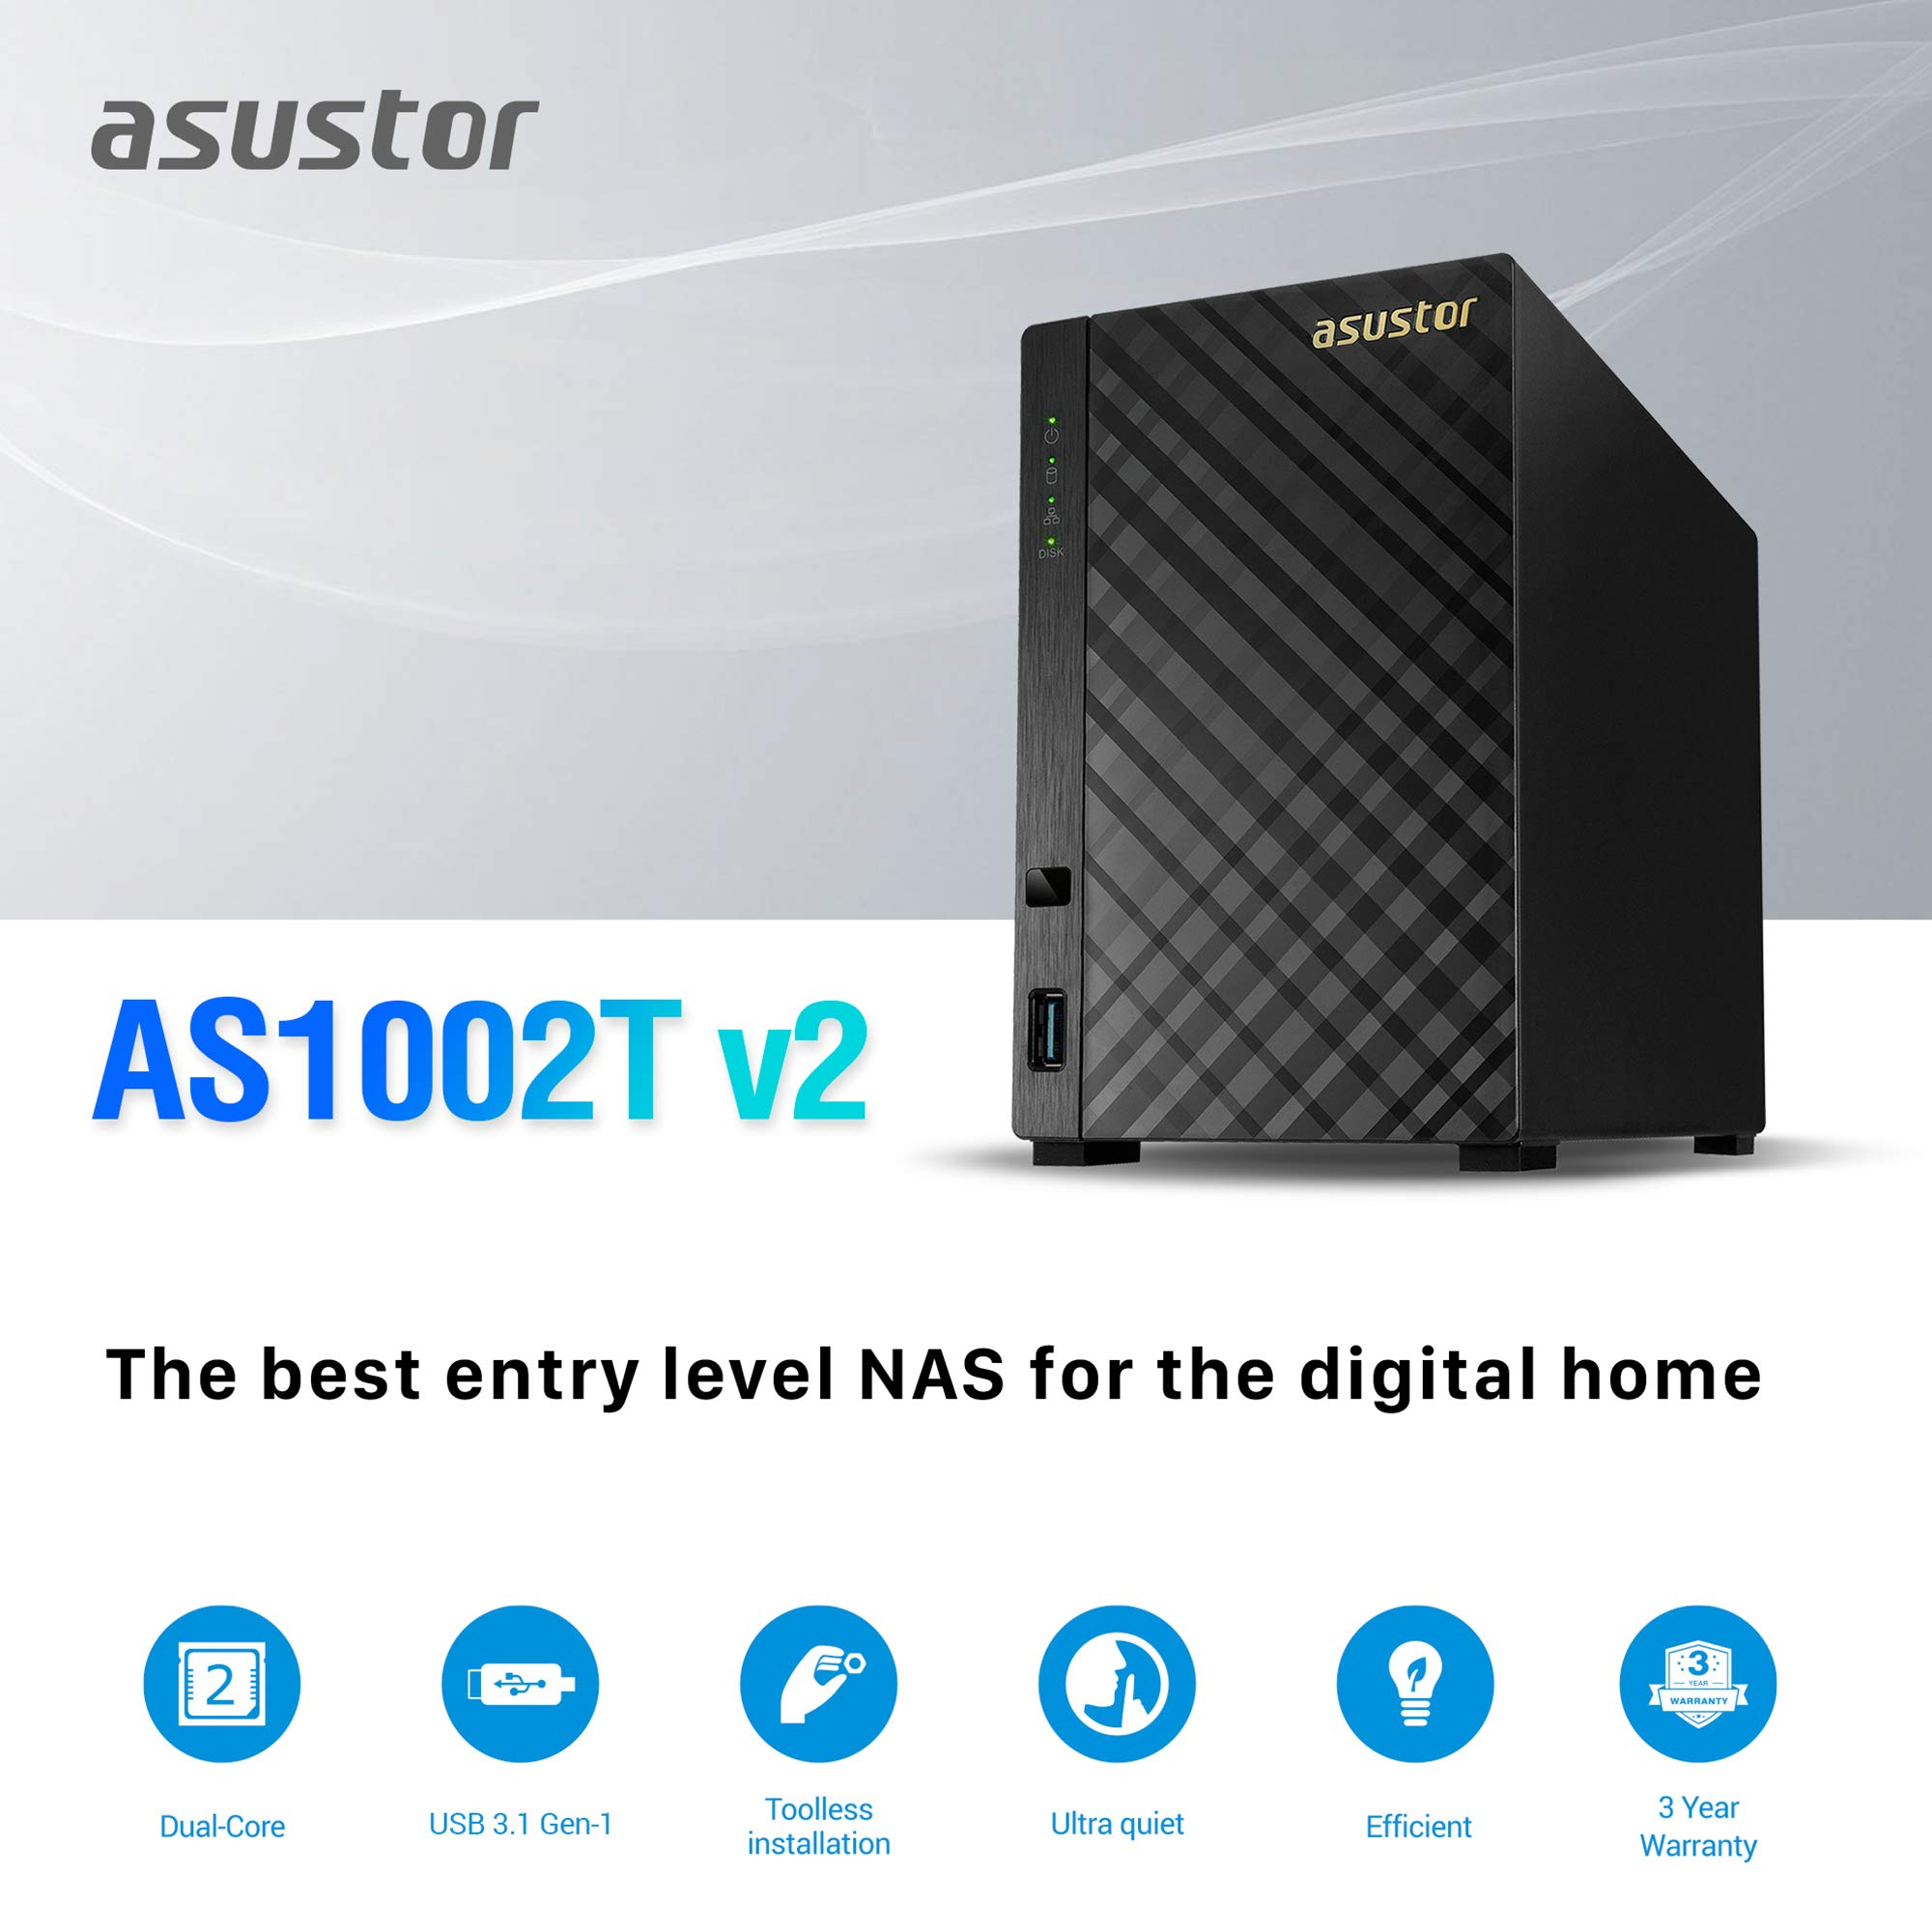 Asustor AS1002T v2   Network Attached Storage + Free exFAT License   1.6GHz Dual-Core, 512MB RAM   Personal Private Cloud   Home Media Server (2 Bay Diskless NAS) by Asustor (Image #2)